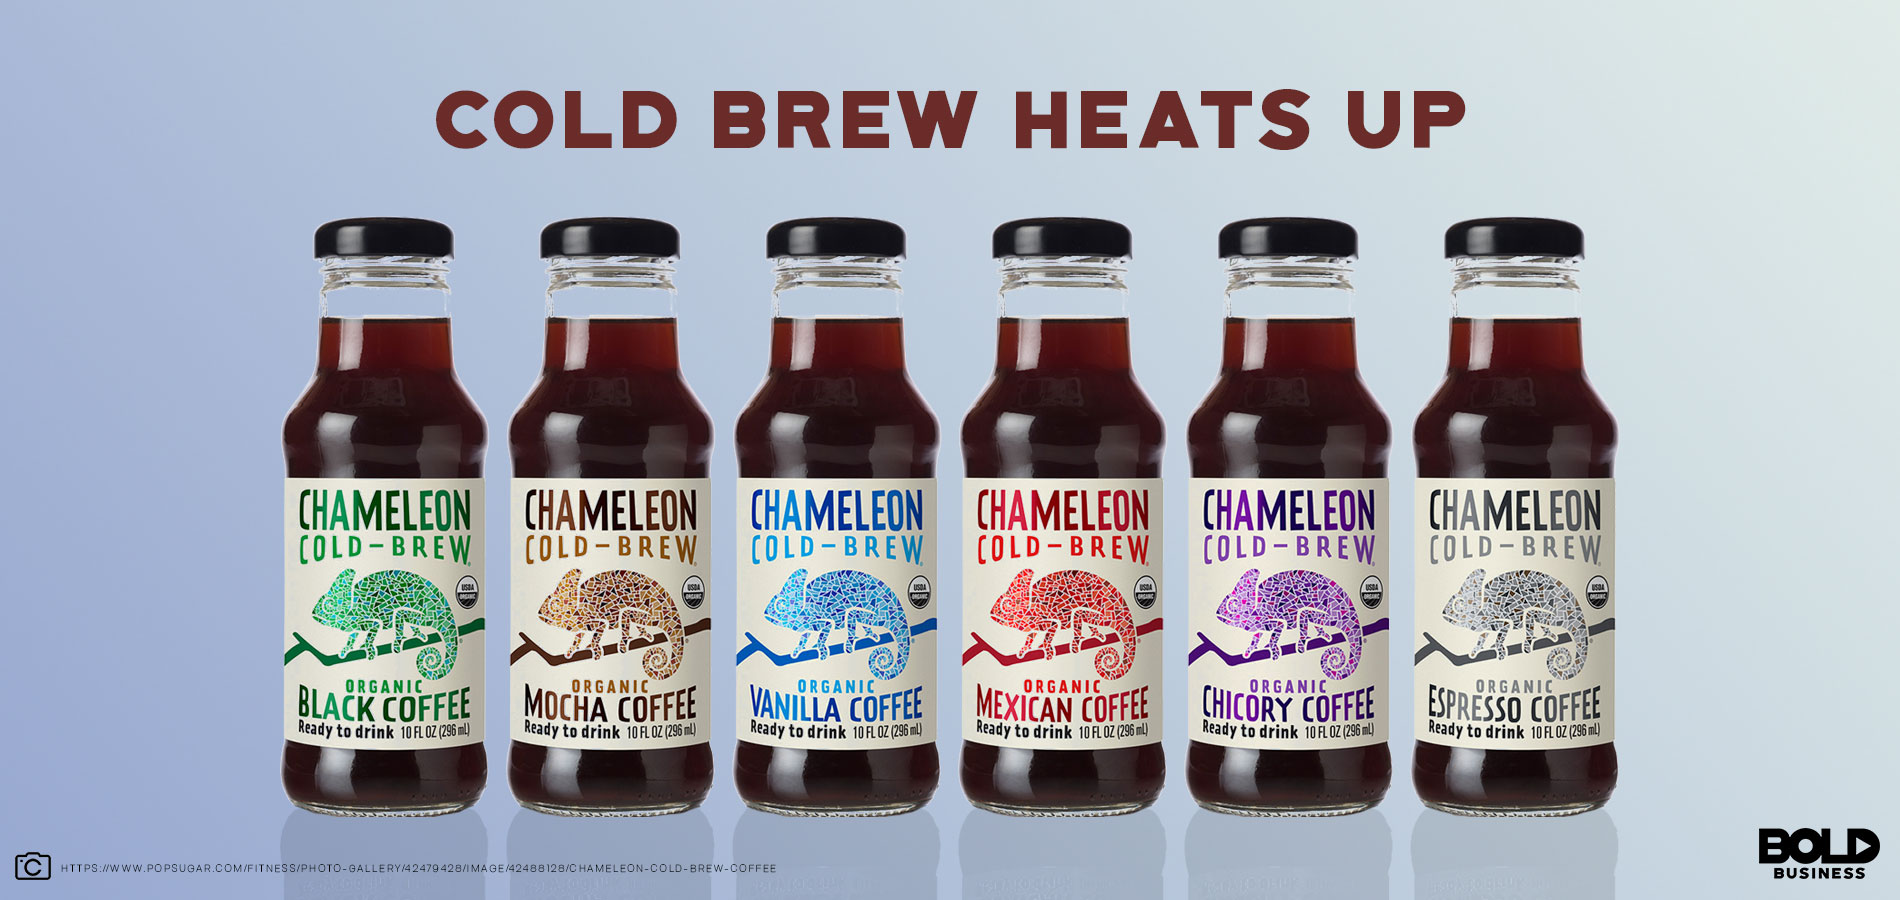 cold brew coffee trend heats up